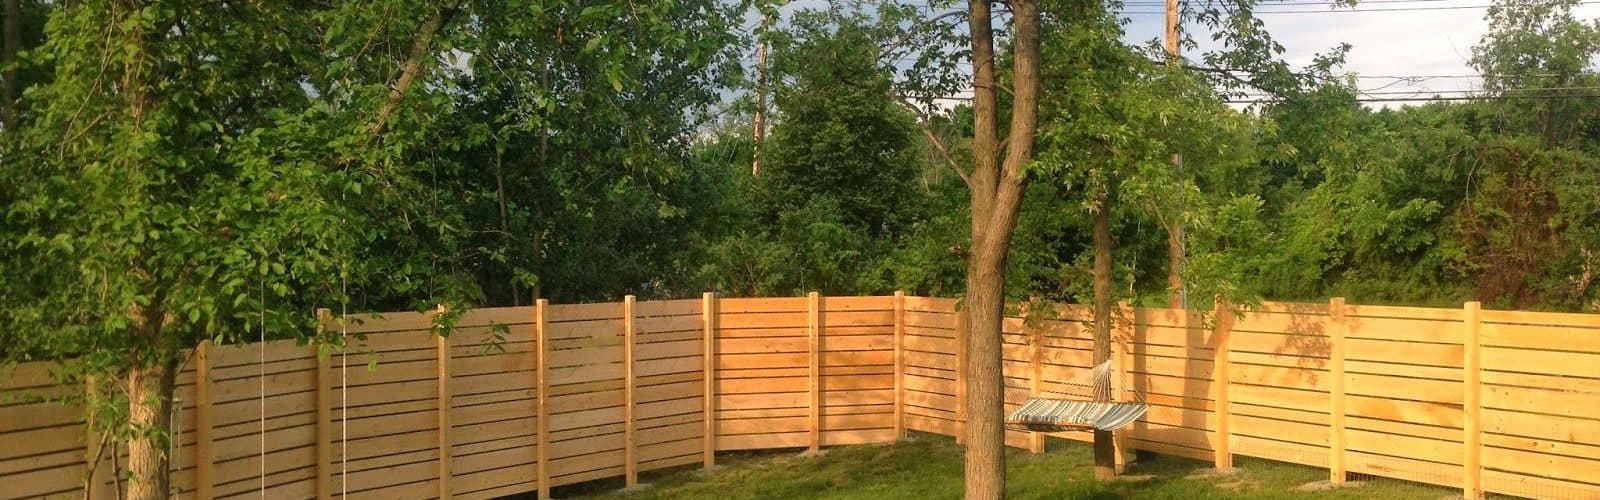 How Much Does It Cost To Fence A Yard The Housing Forum within 12 Genius Concepts of How to Build How Much To Fence A Backyard